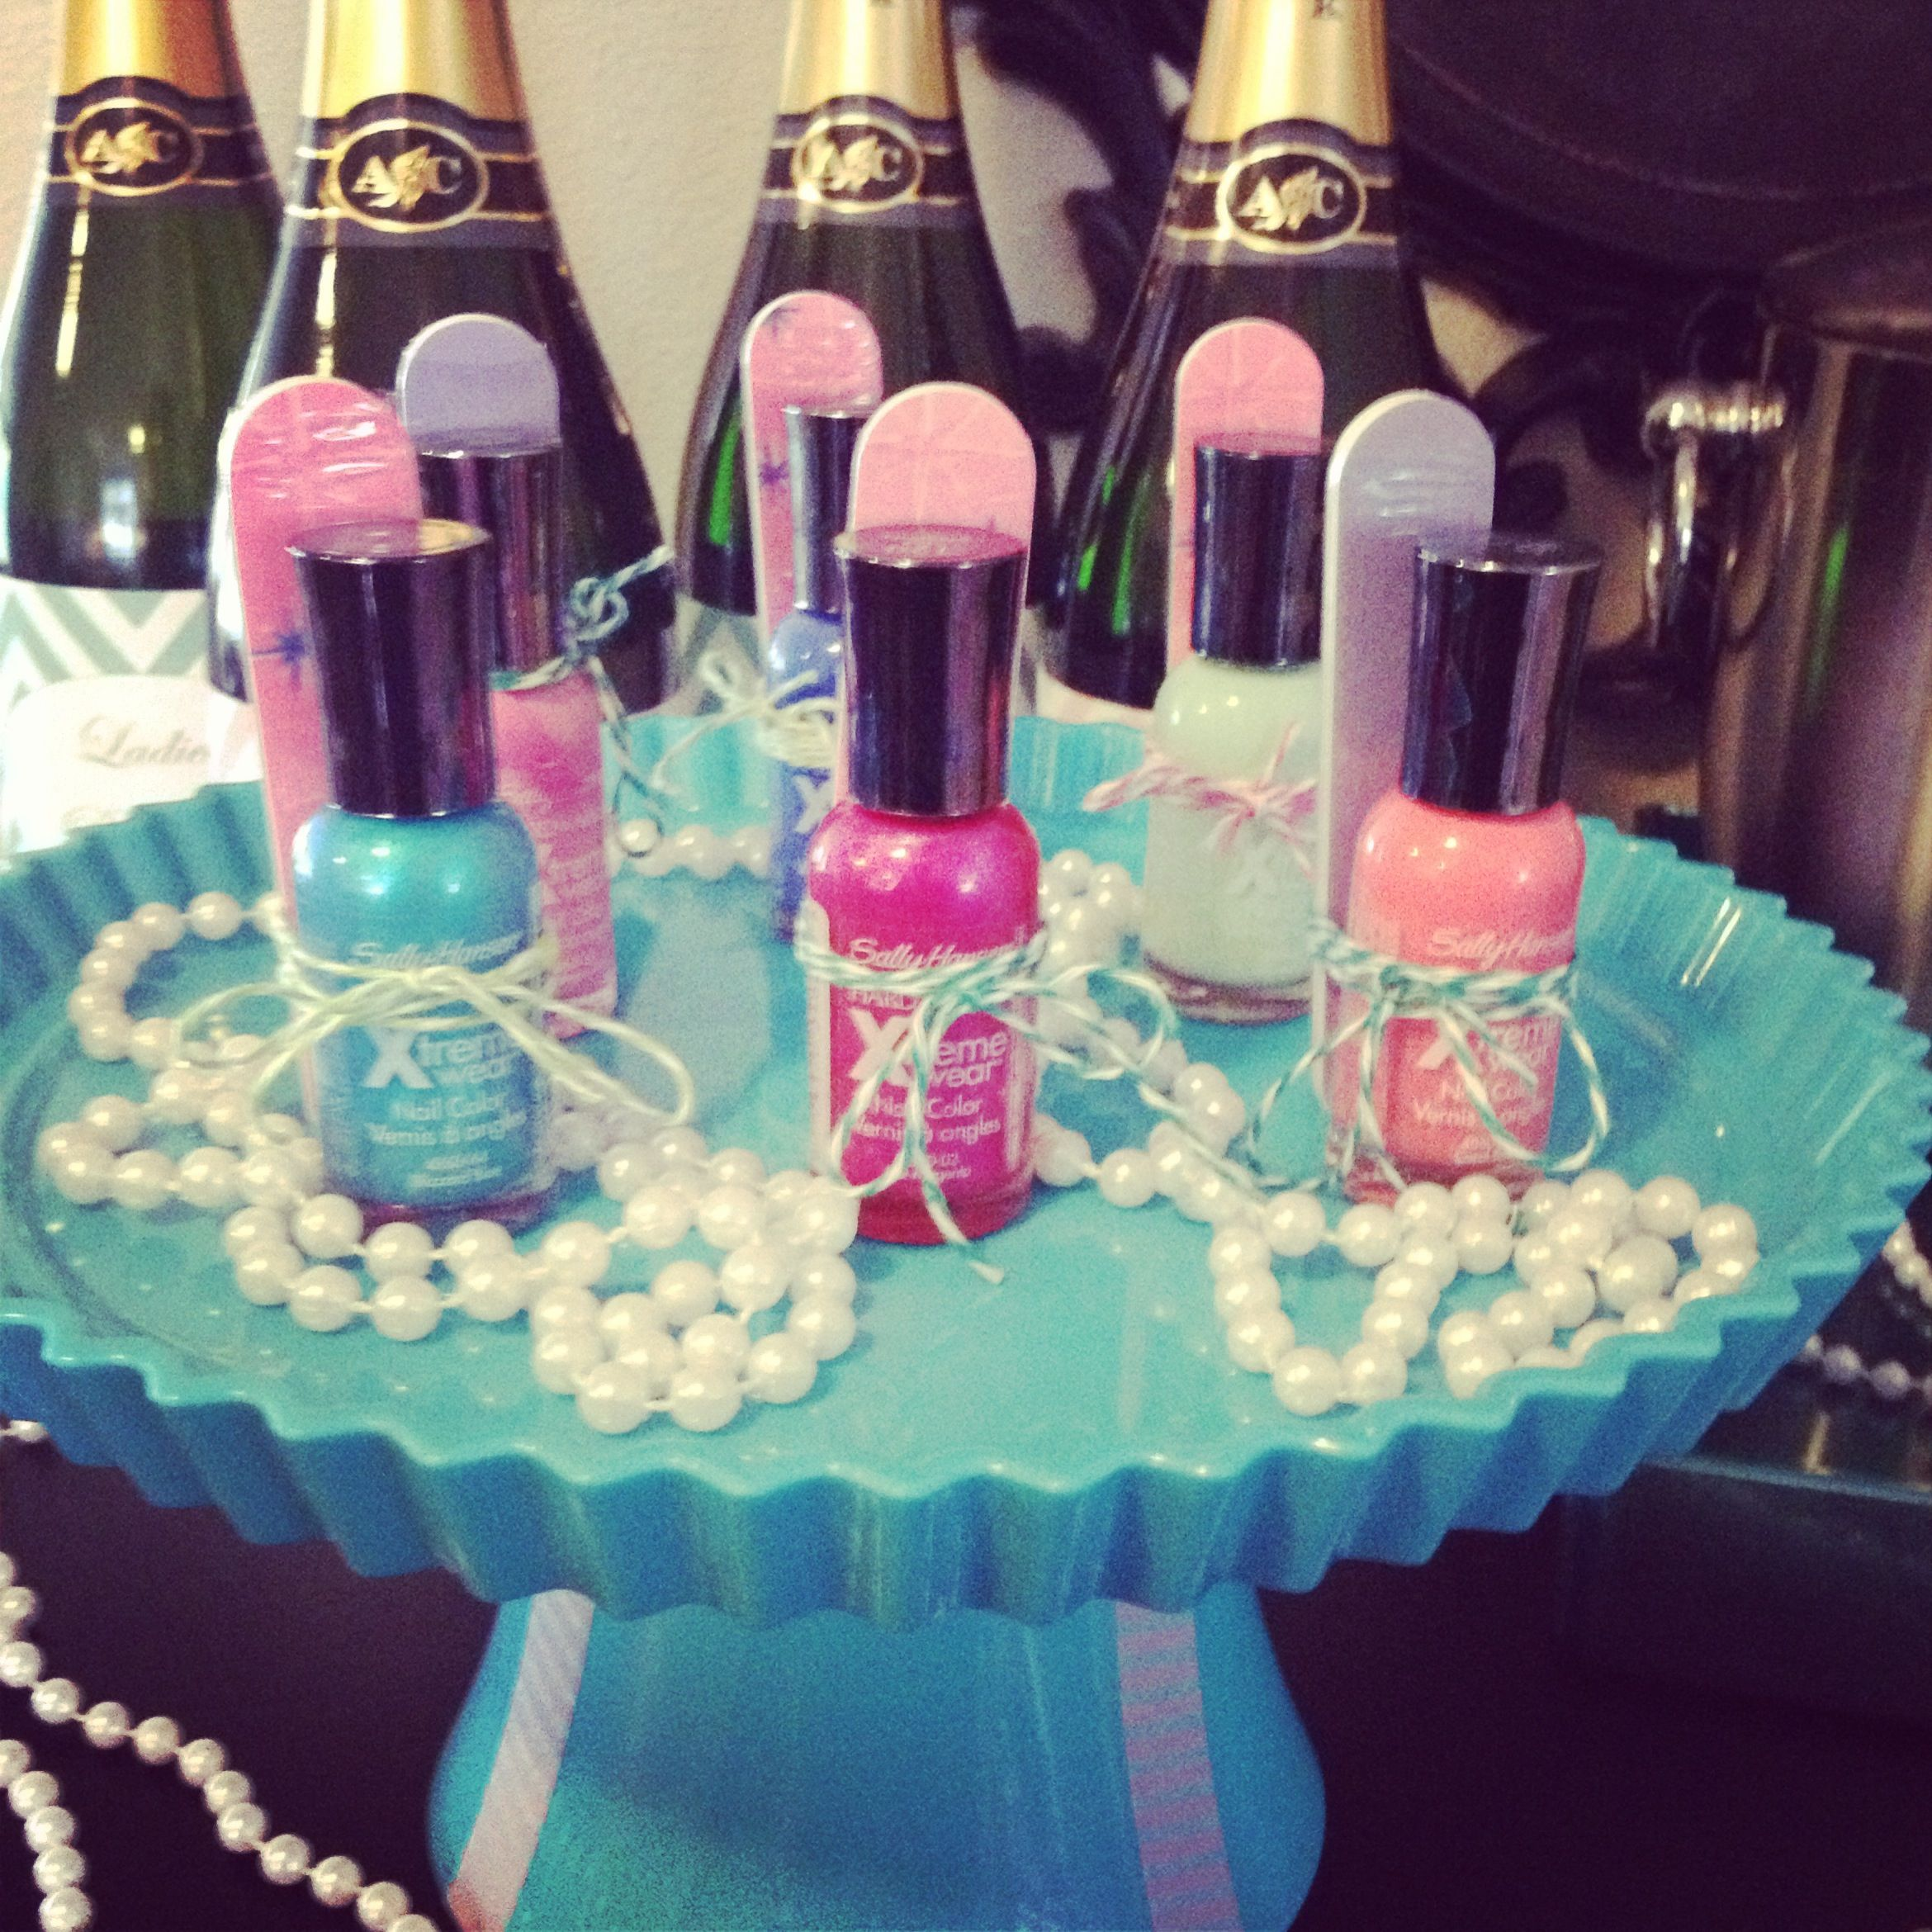 Nail Polish Bottles Fun Sleepover Games And Sleepover: Ideas Para Fiestas/Party Ideas